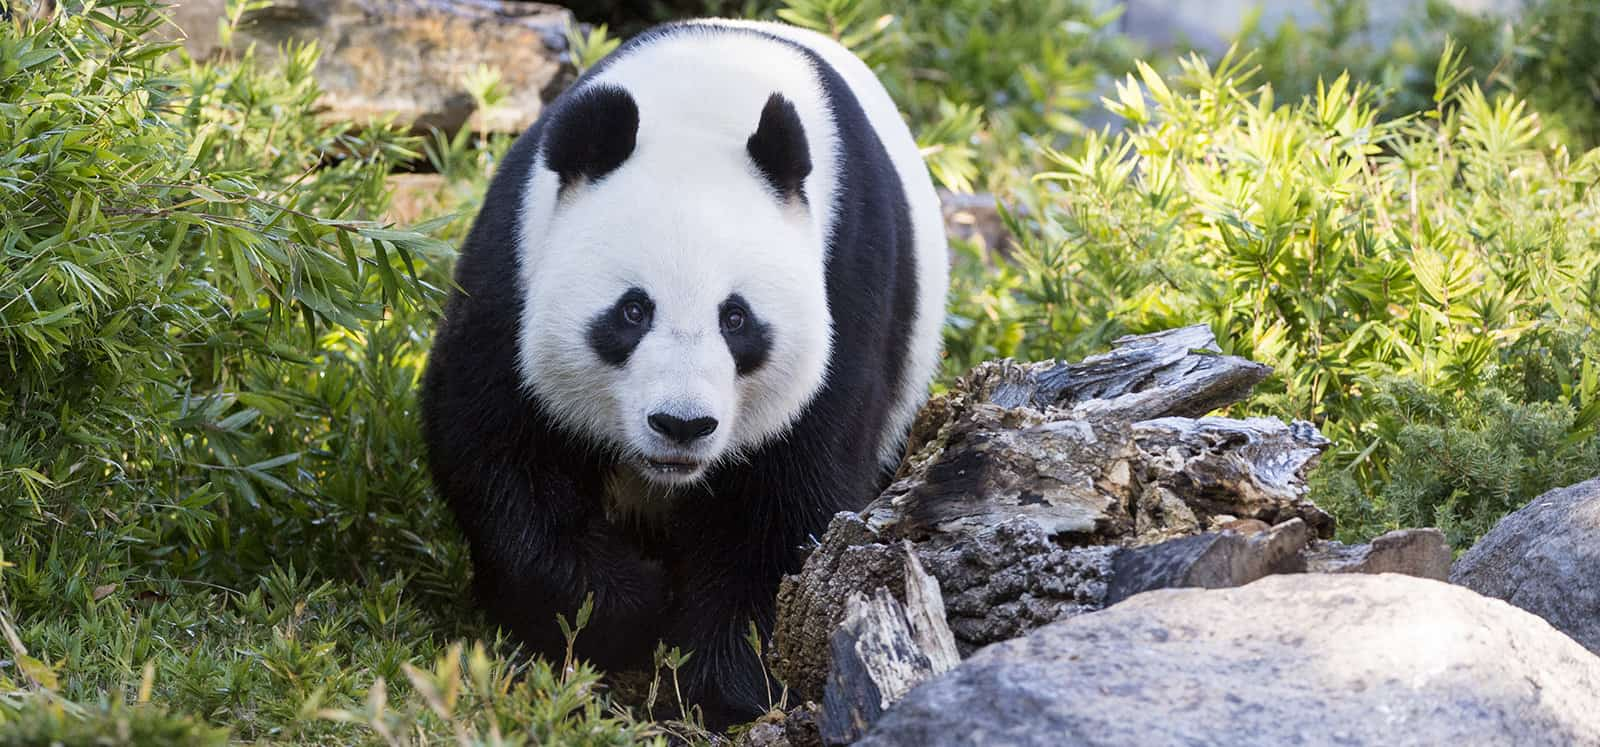 Giant Panda walking at Adelaide Zoo